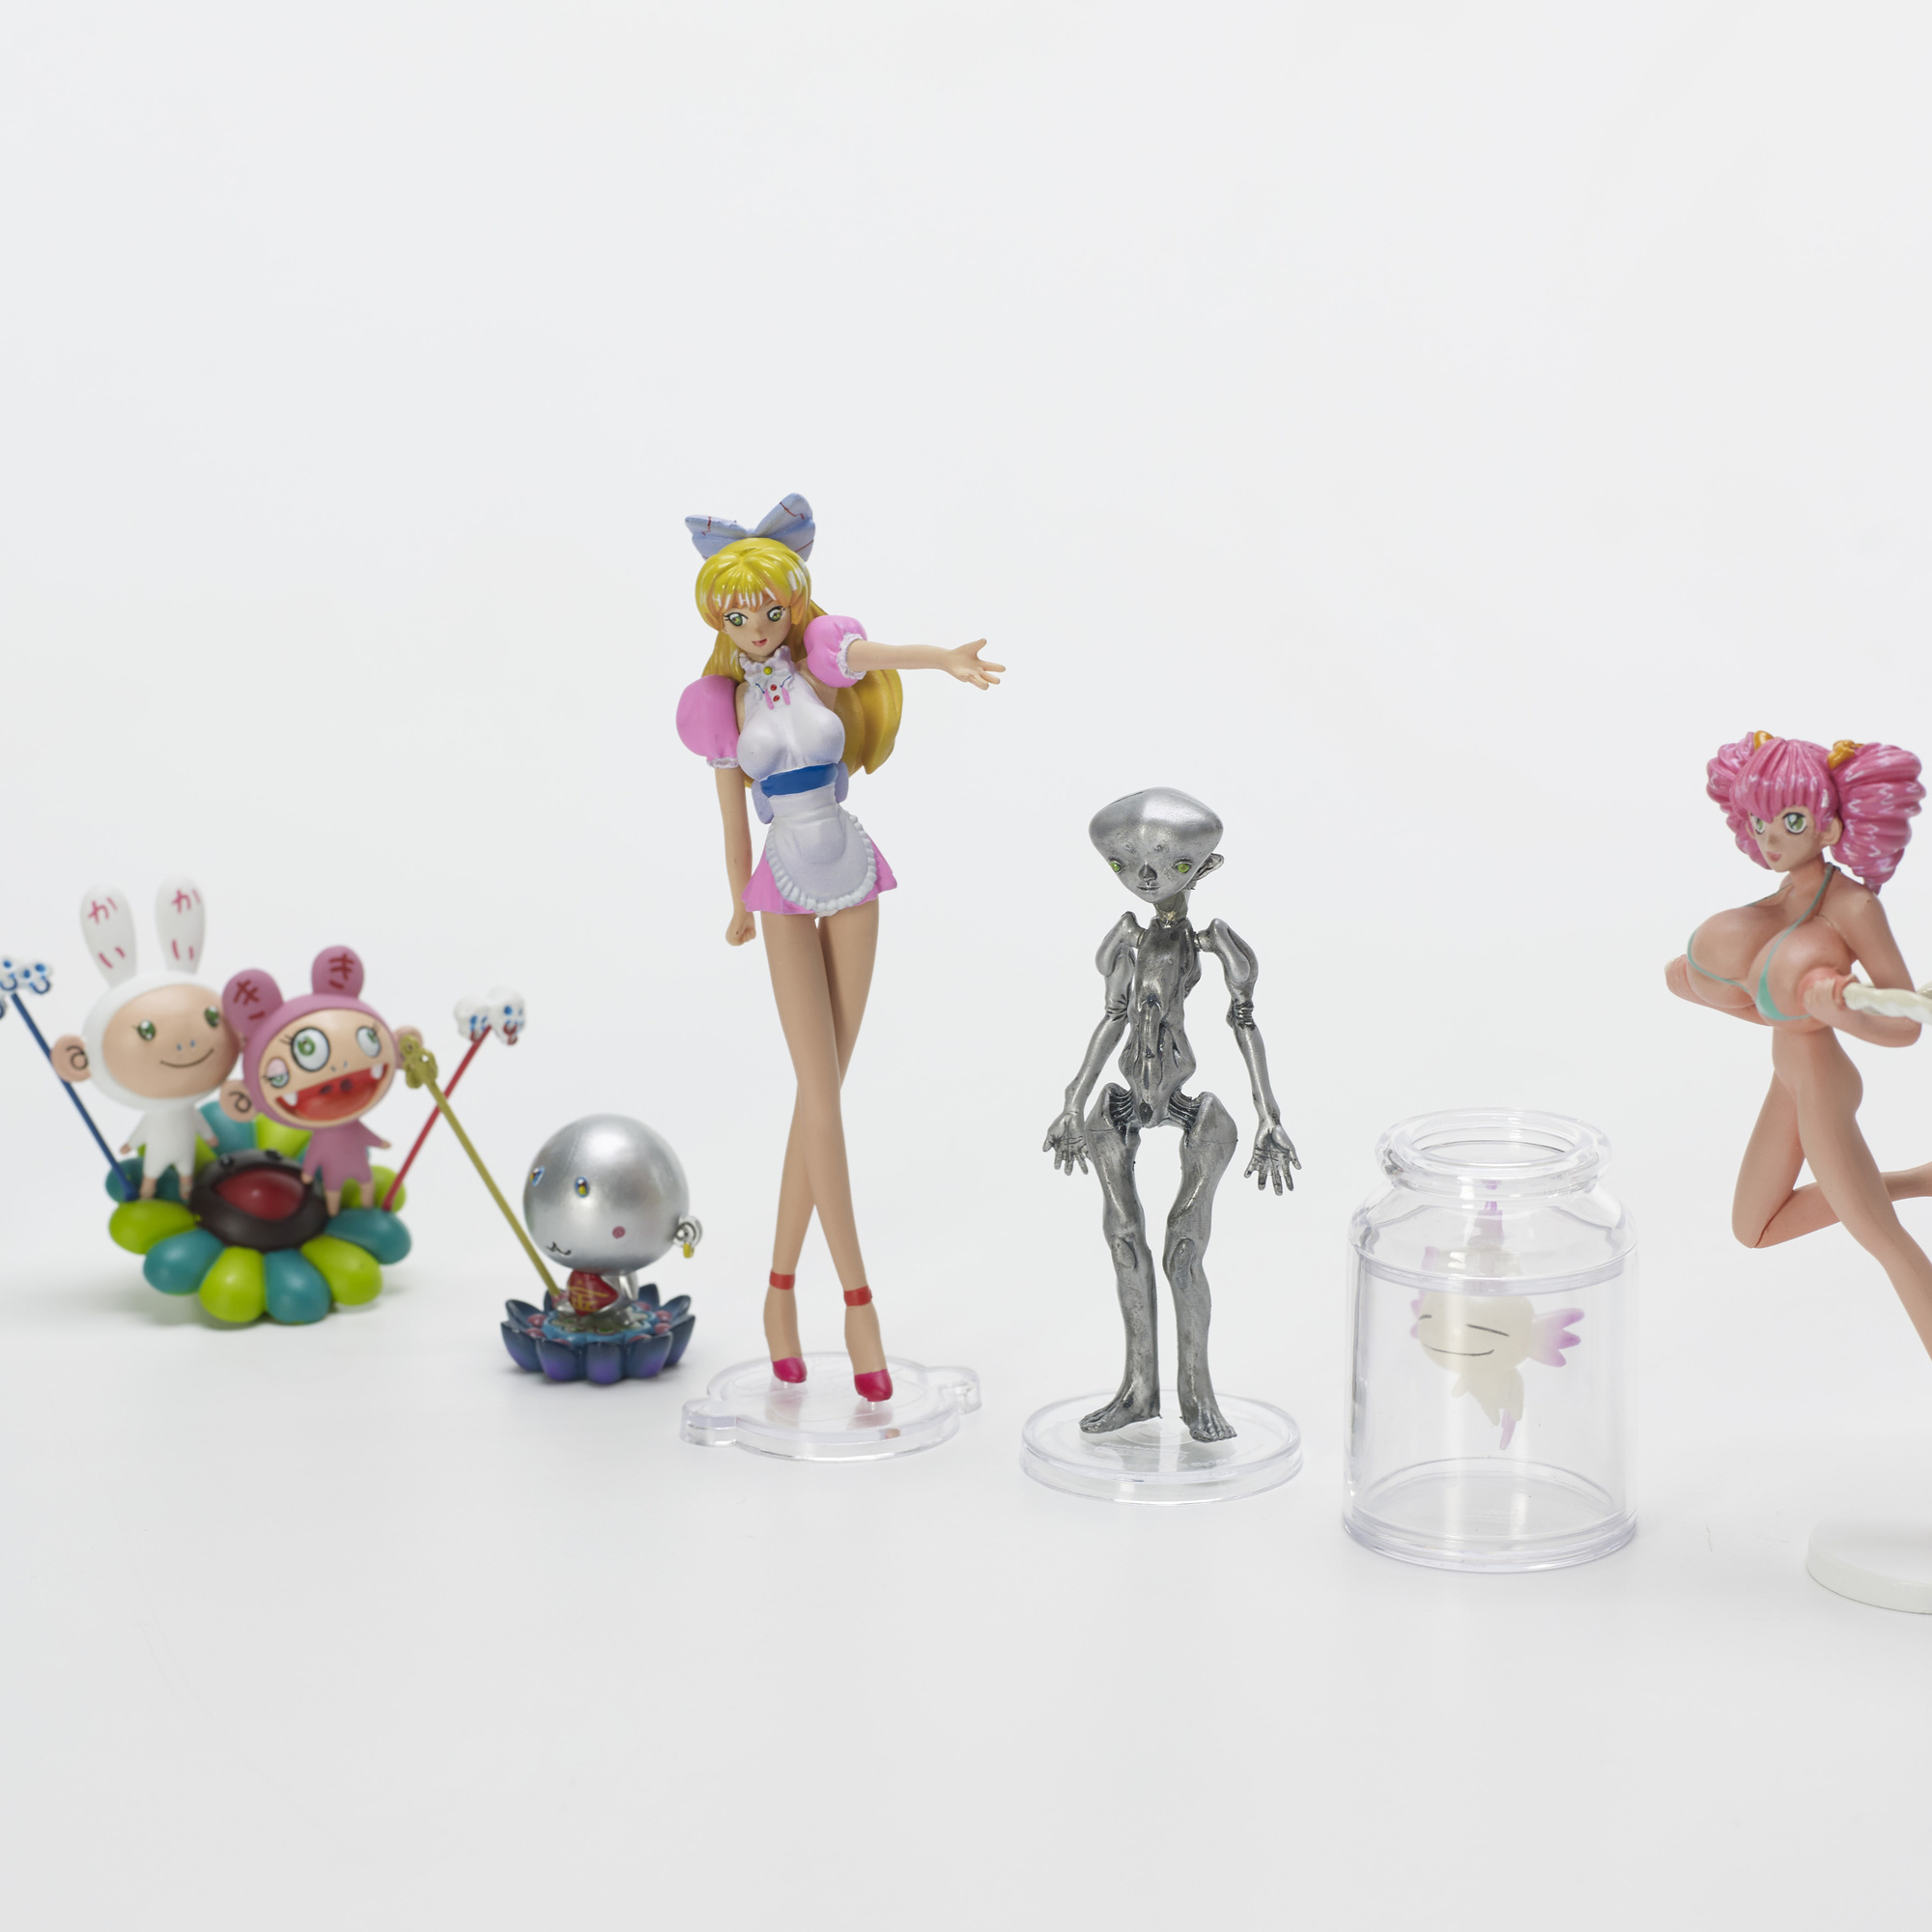 622: Takashi Murakami / set of ten figures from Superflat Museum: Convenience Store Edition (2 of 2)